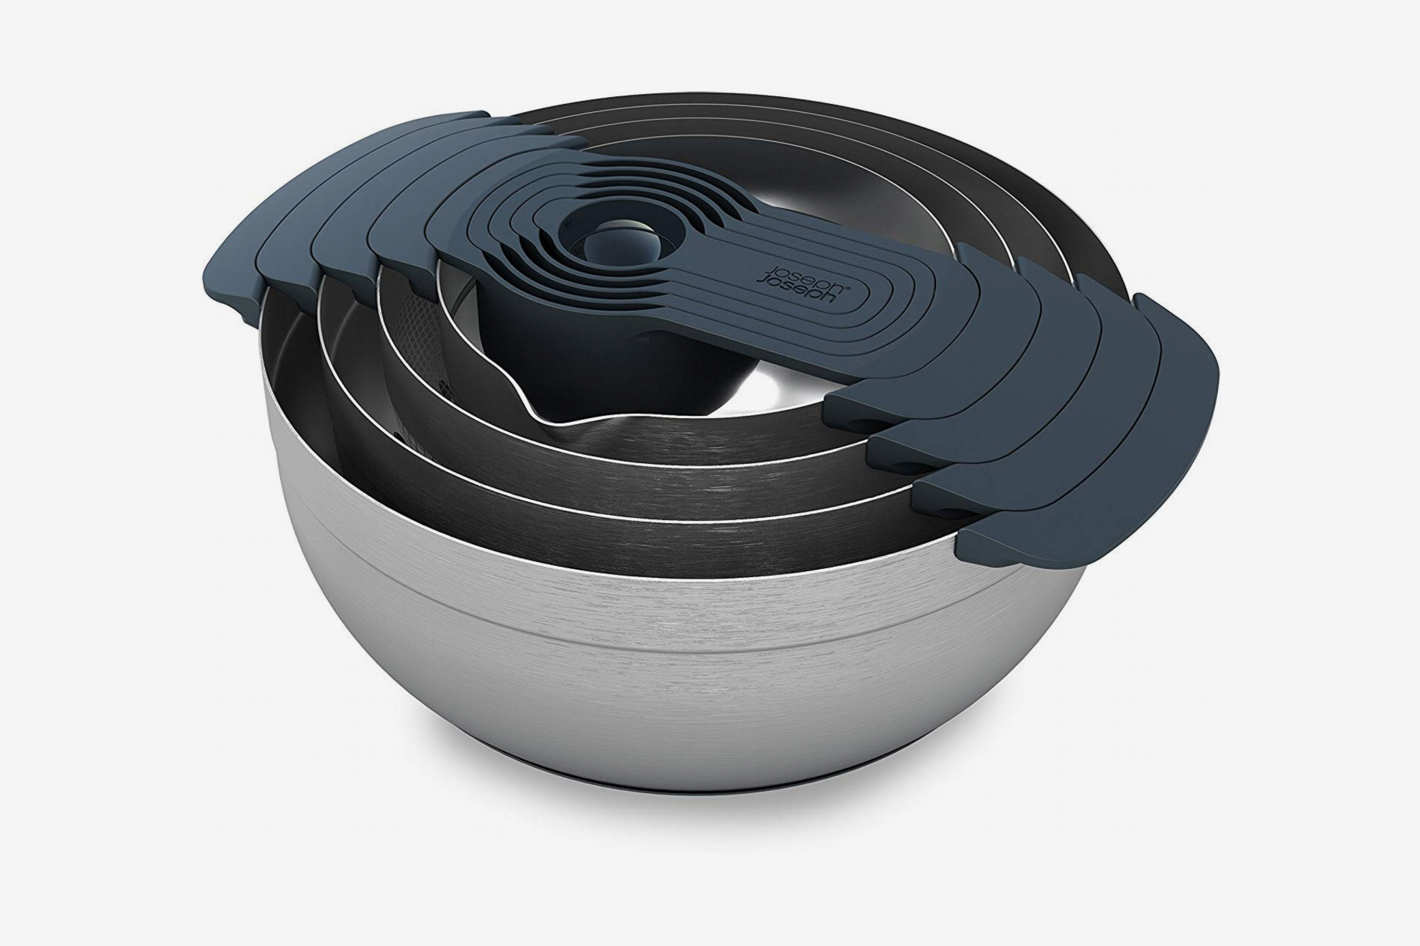 Joseph Joseph 95032 Nest 9 Stainless Steel Compact Nesting Mixing Bowl Set